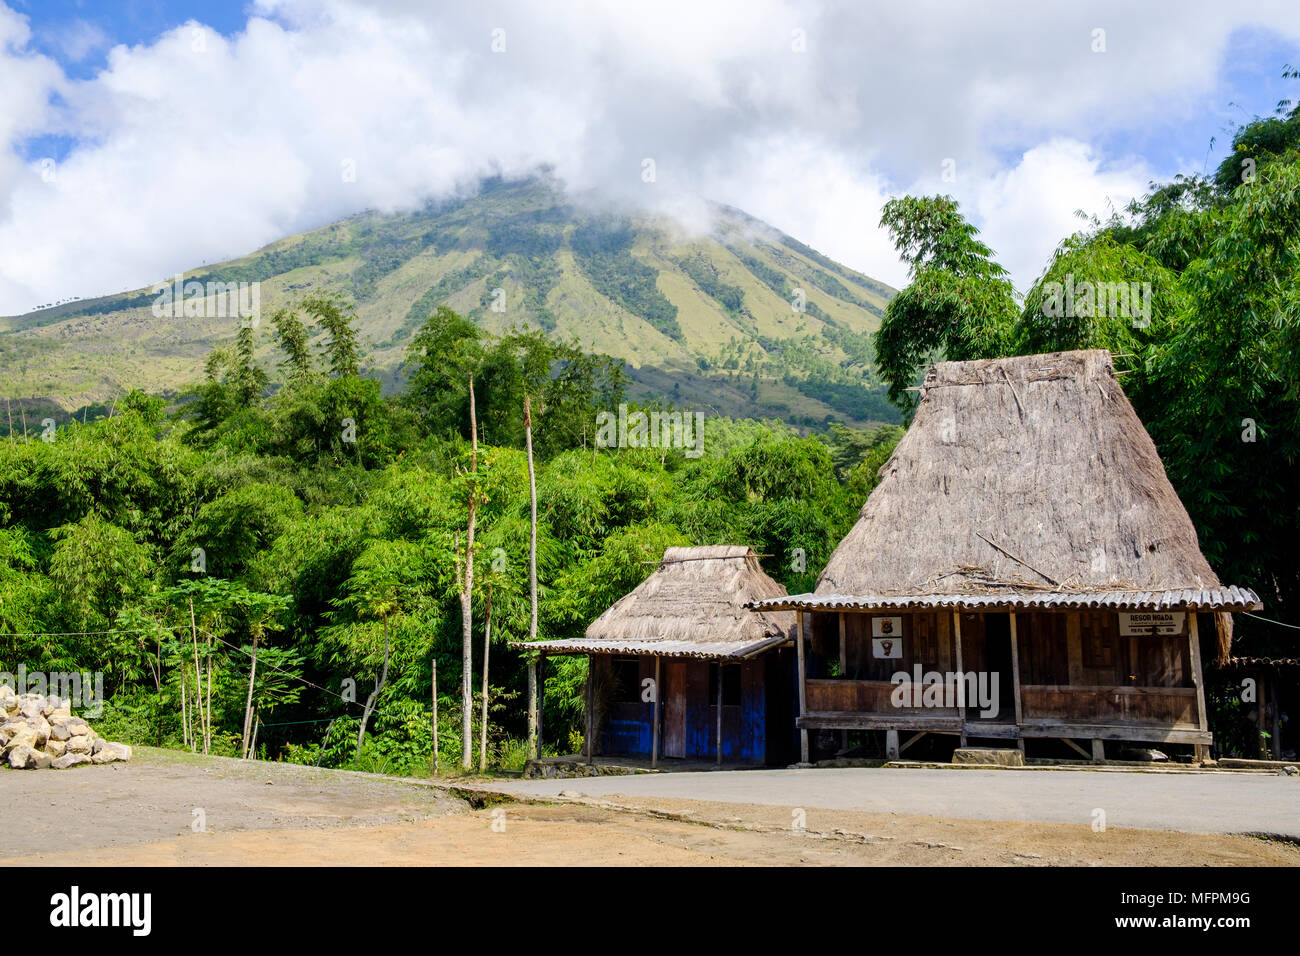 Inerie volcano looms behind two houses at Bena traditional village, Ngada District, Flores Island (East Nusa Tenggara), Indonesia. - Stock Image